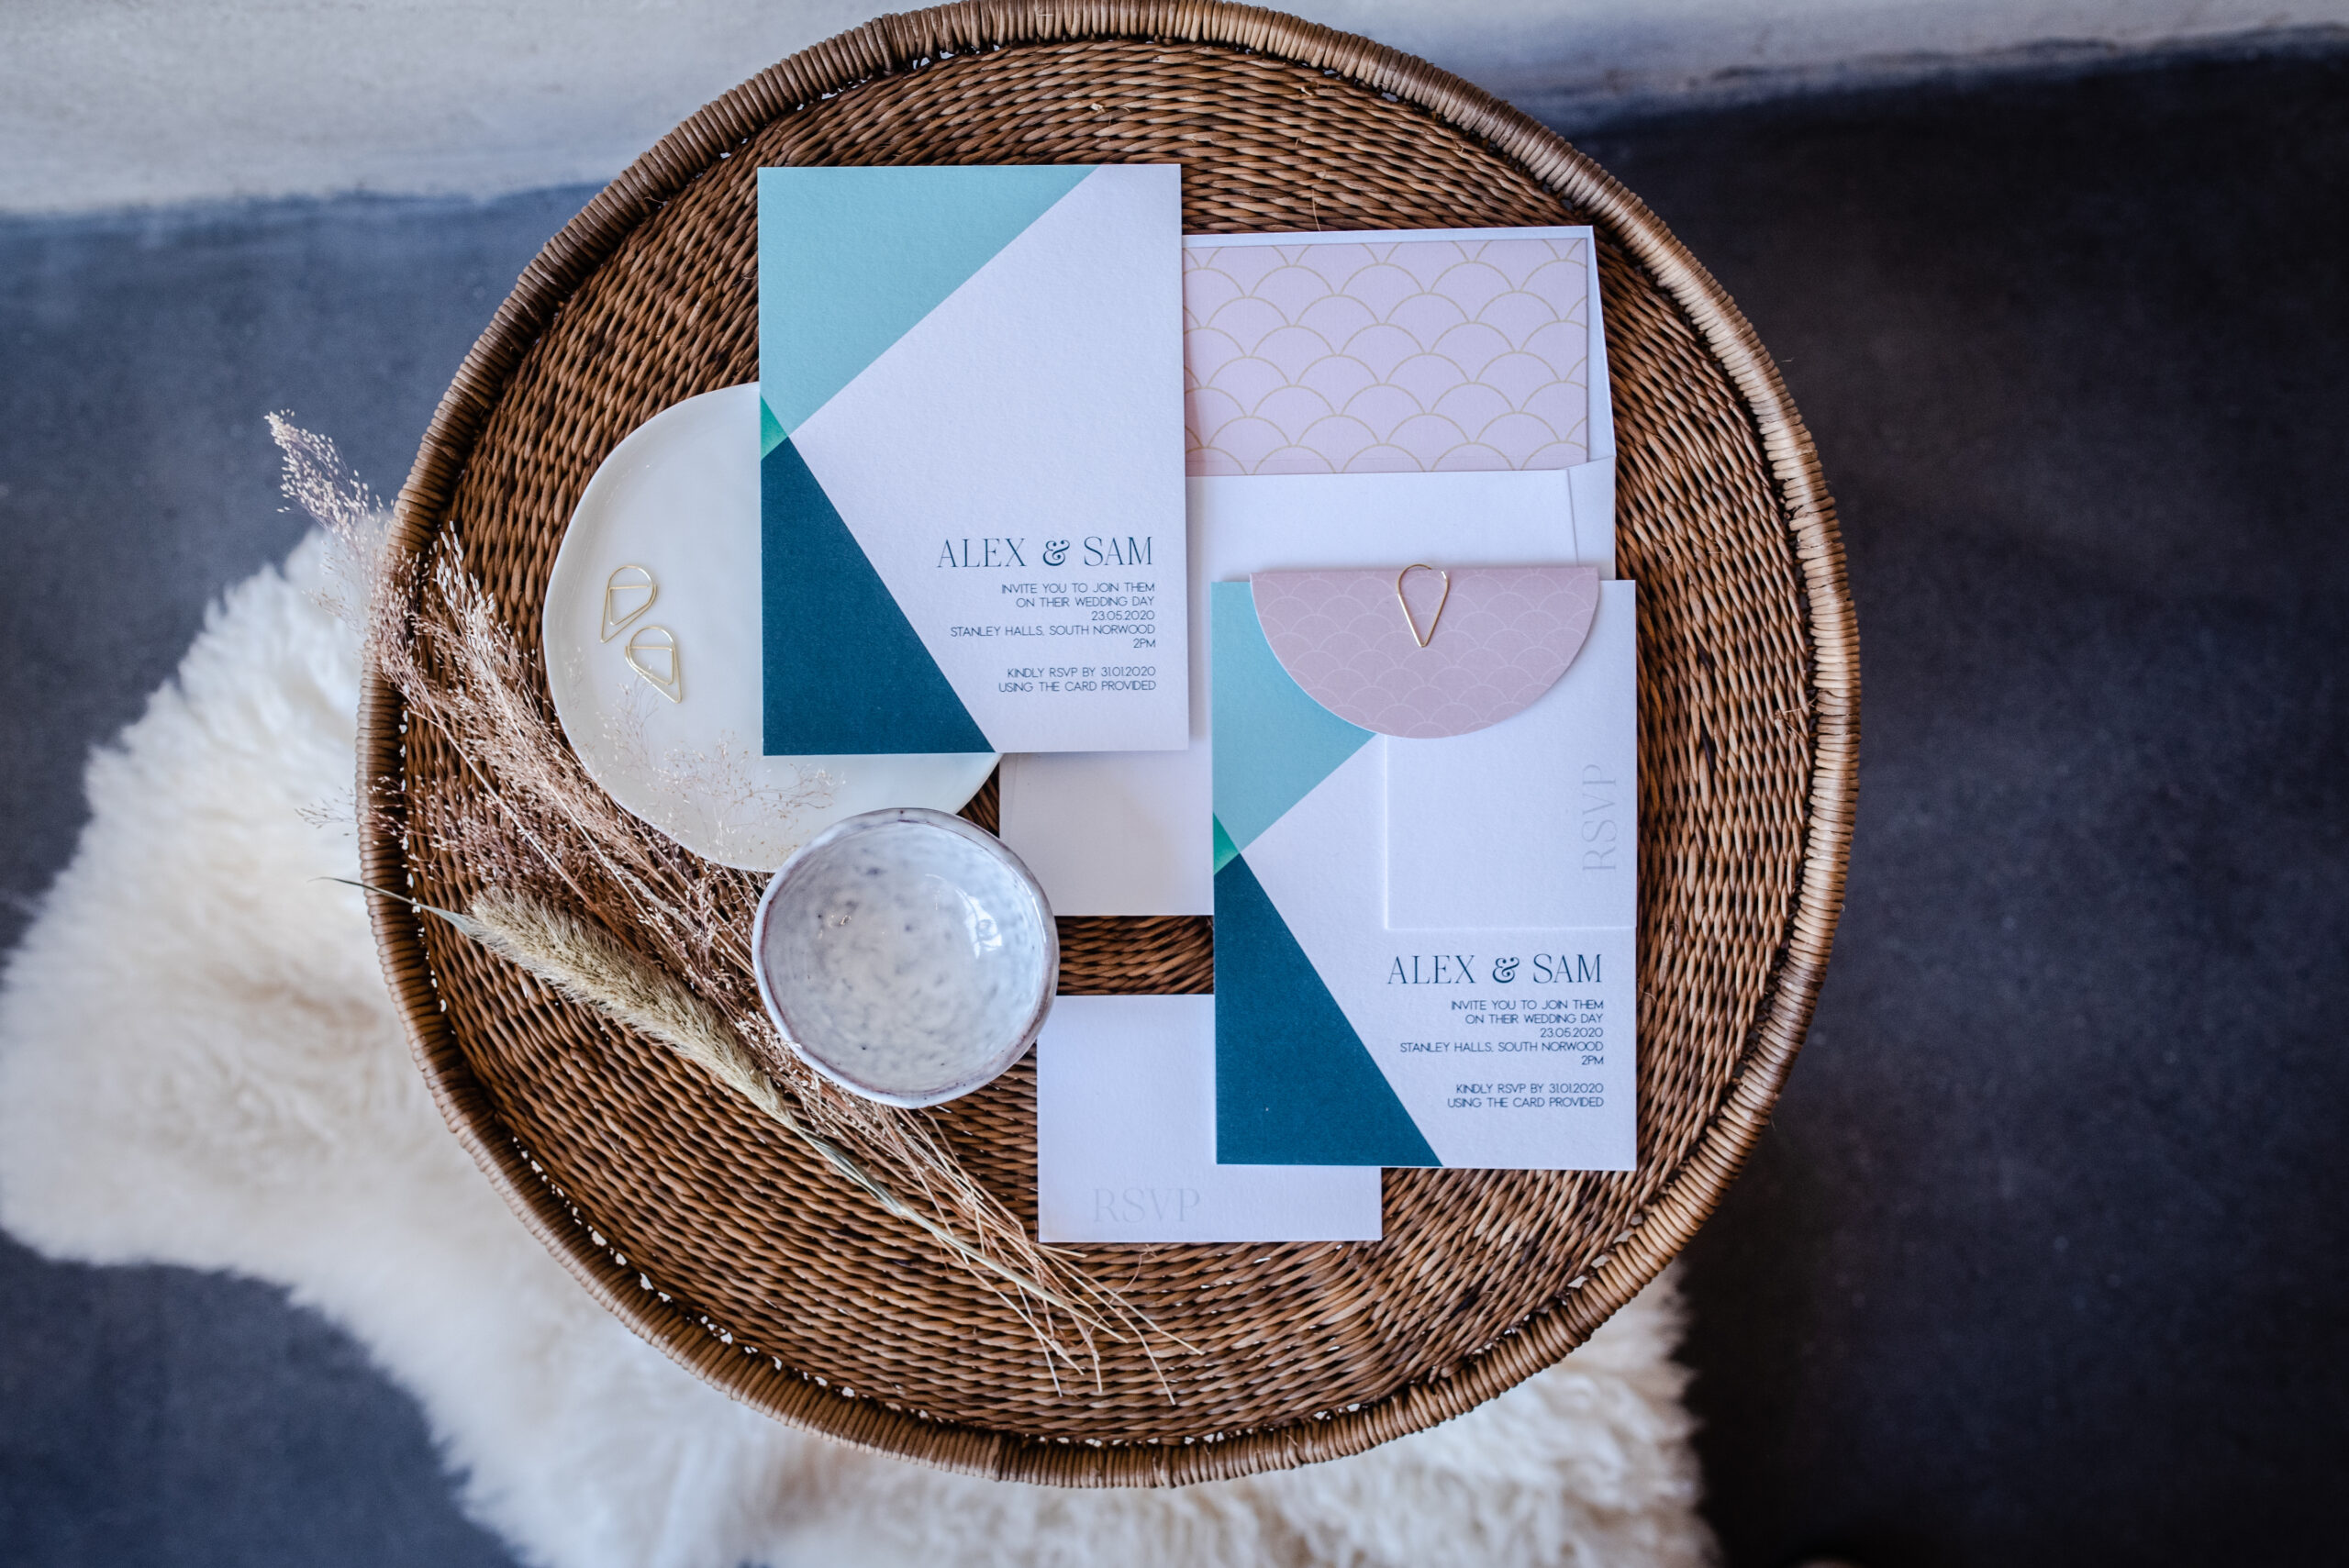 pastel wedding stationery abstract shapes flatlay on a rattan basket with dried flowers